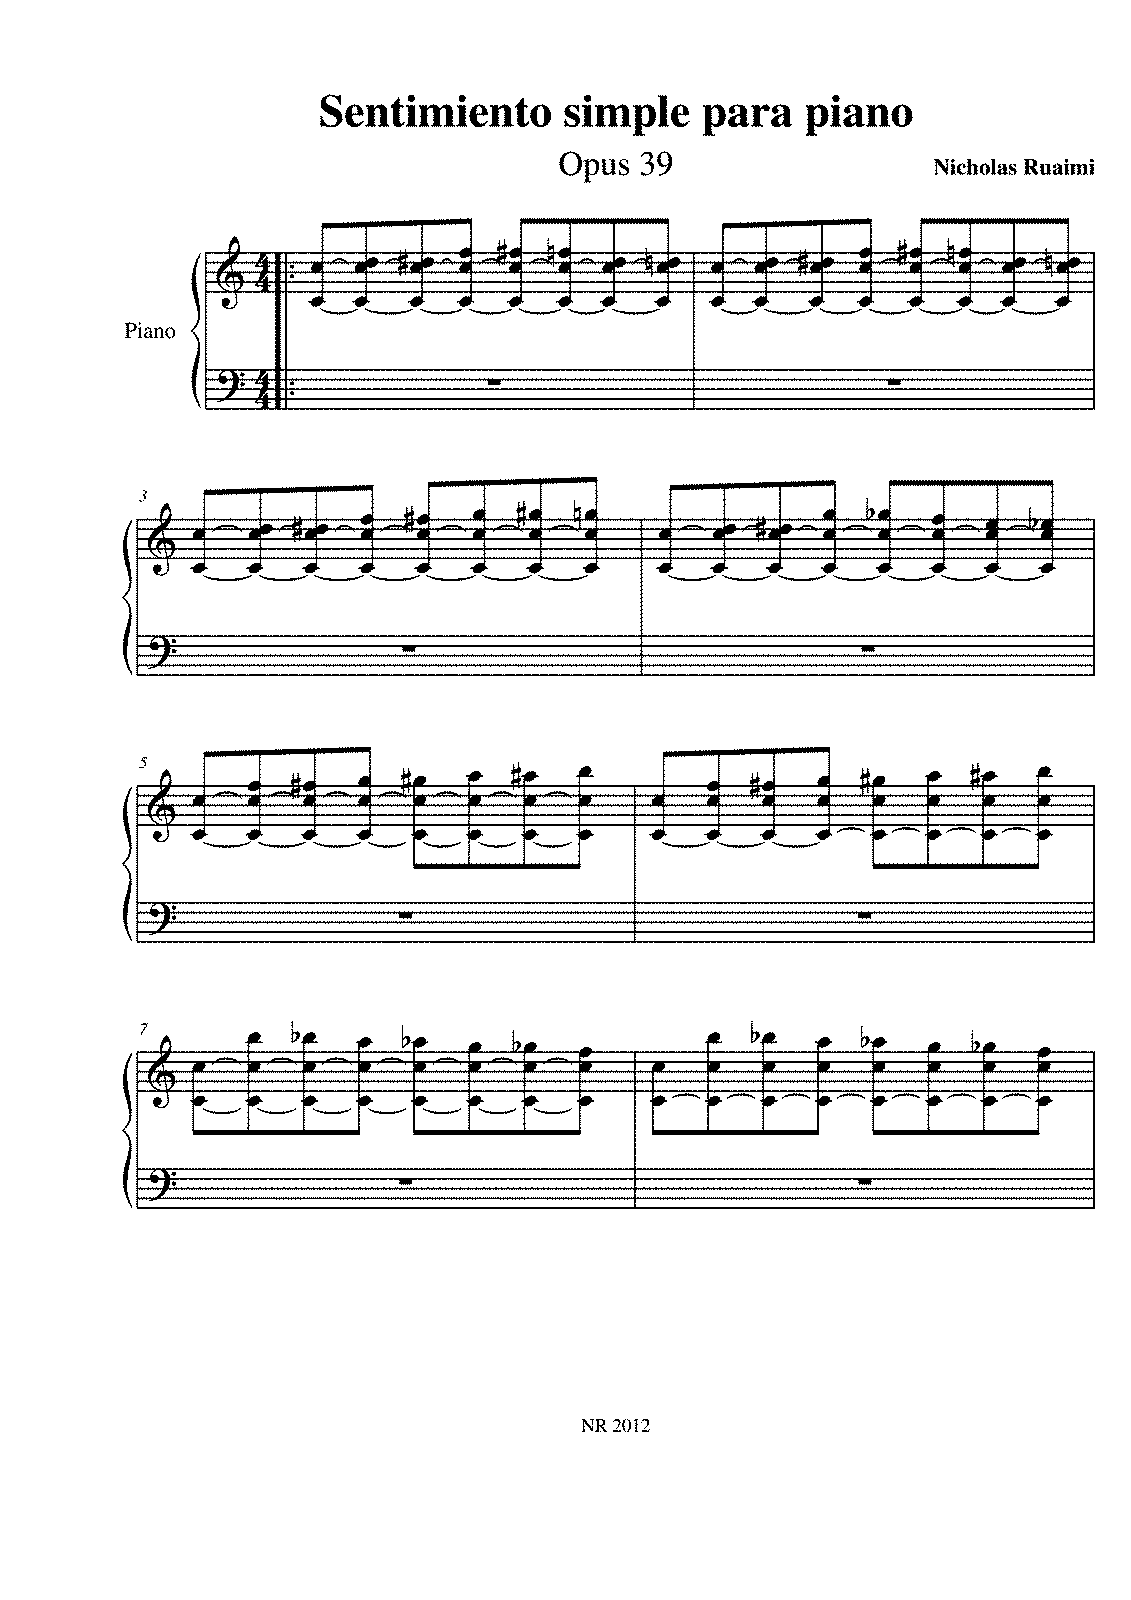 PMLP412379-Opus 39 - Sentimiento simple para piano.pdf